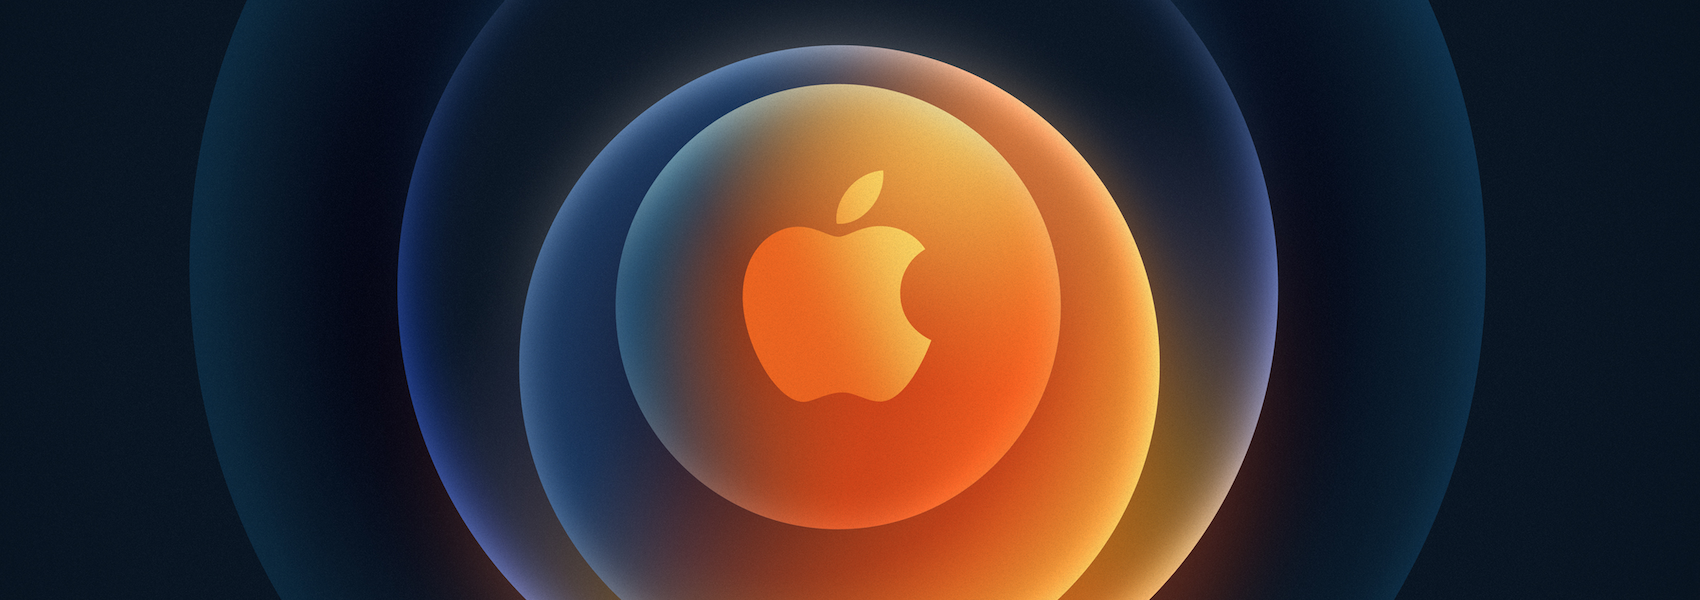 October 2020 Apple Event: Hi, Speed